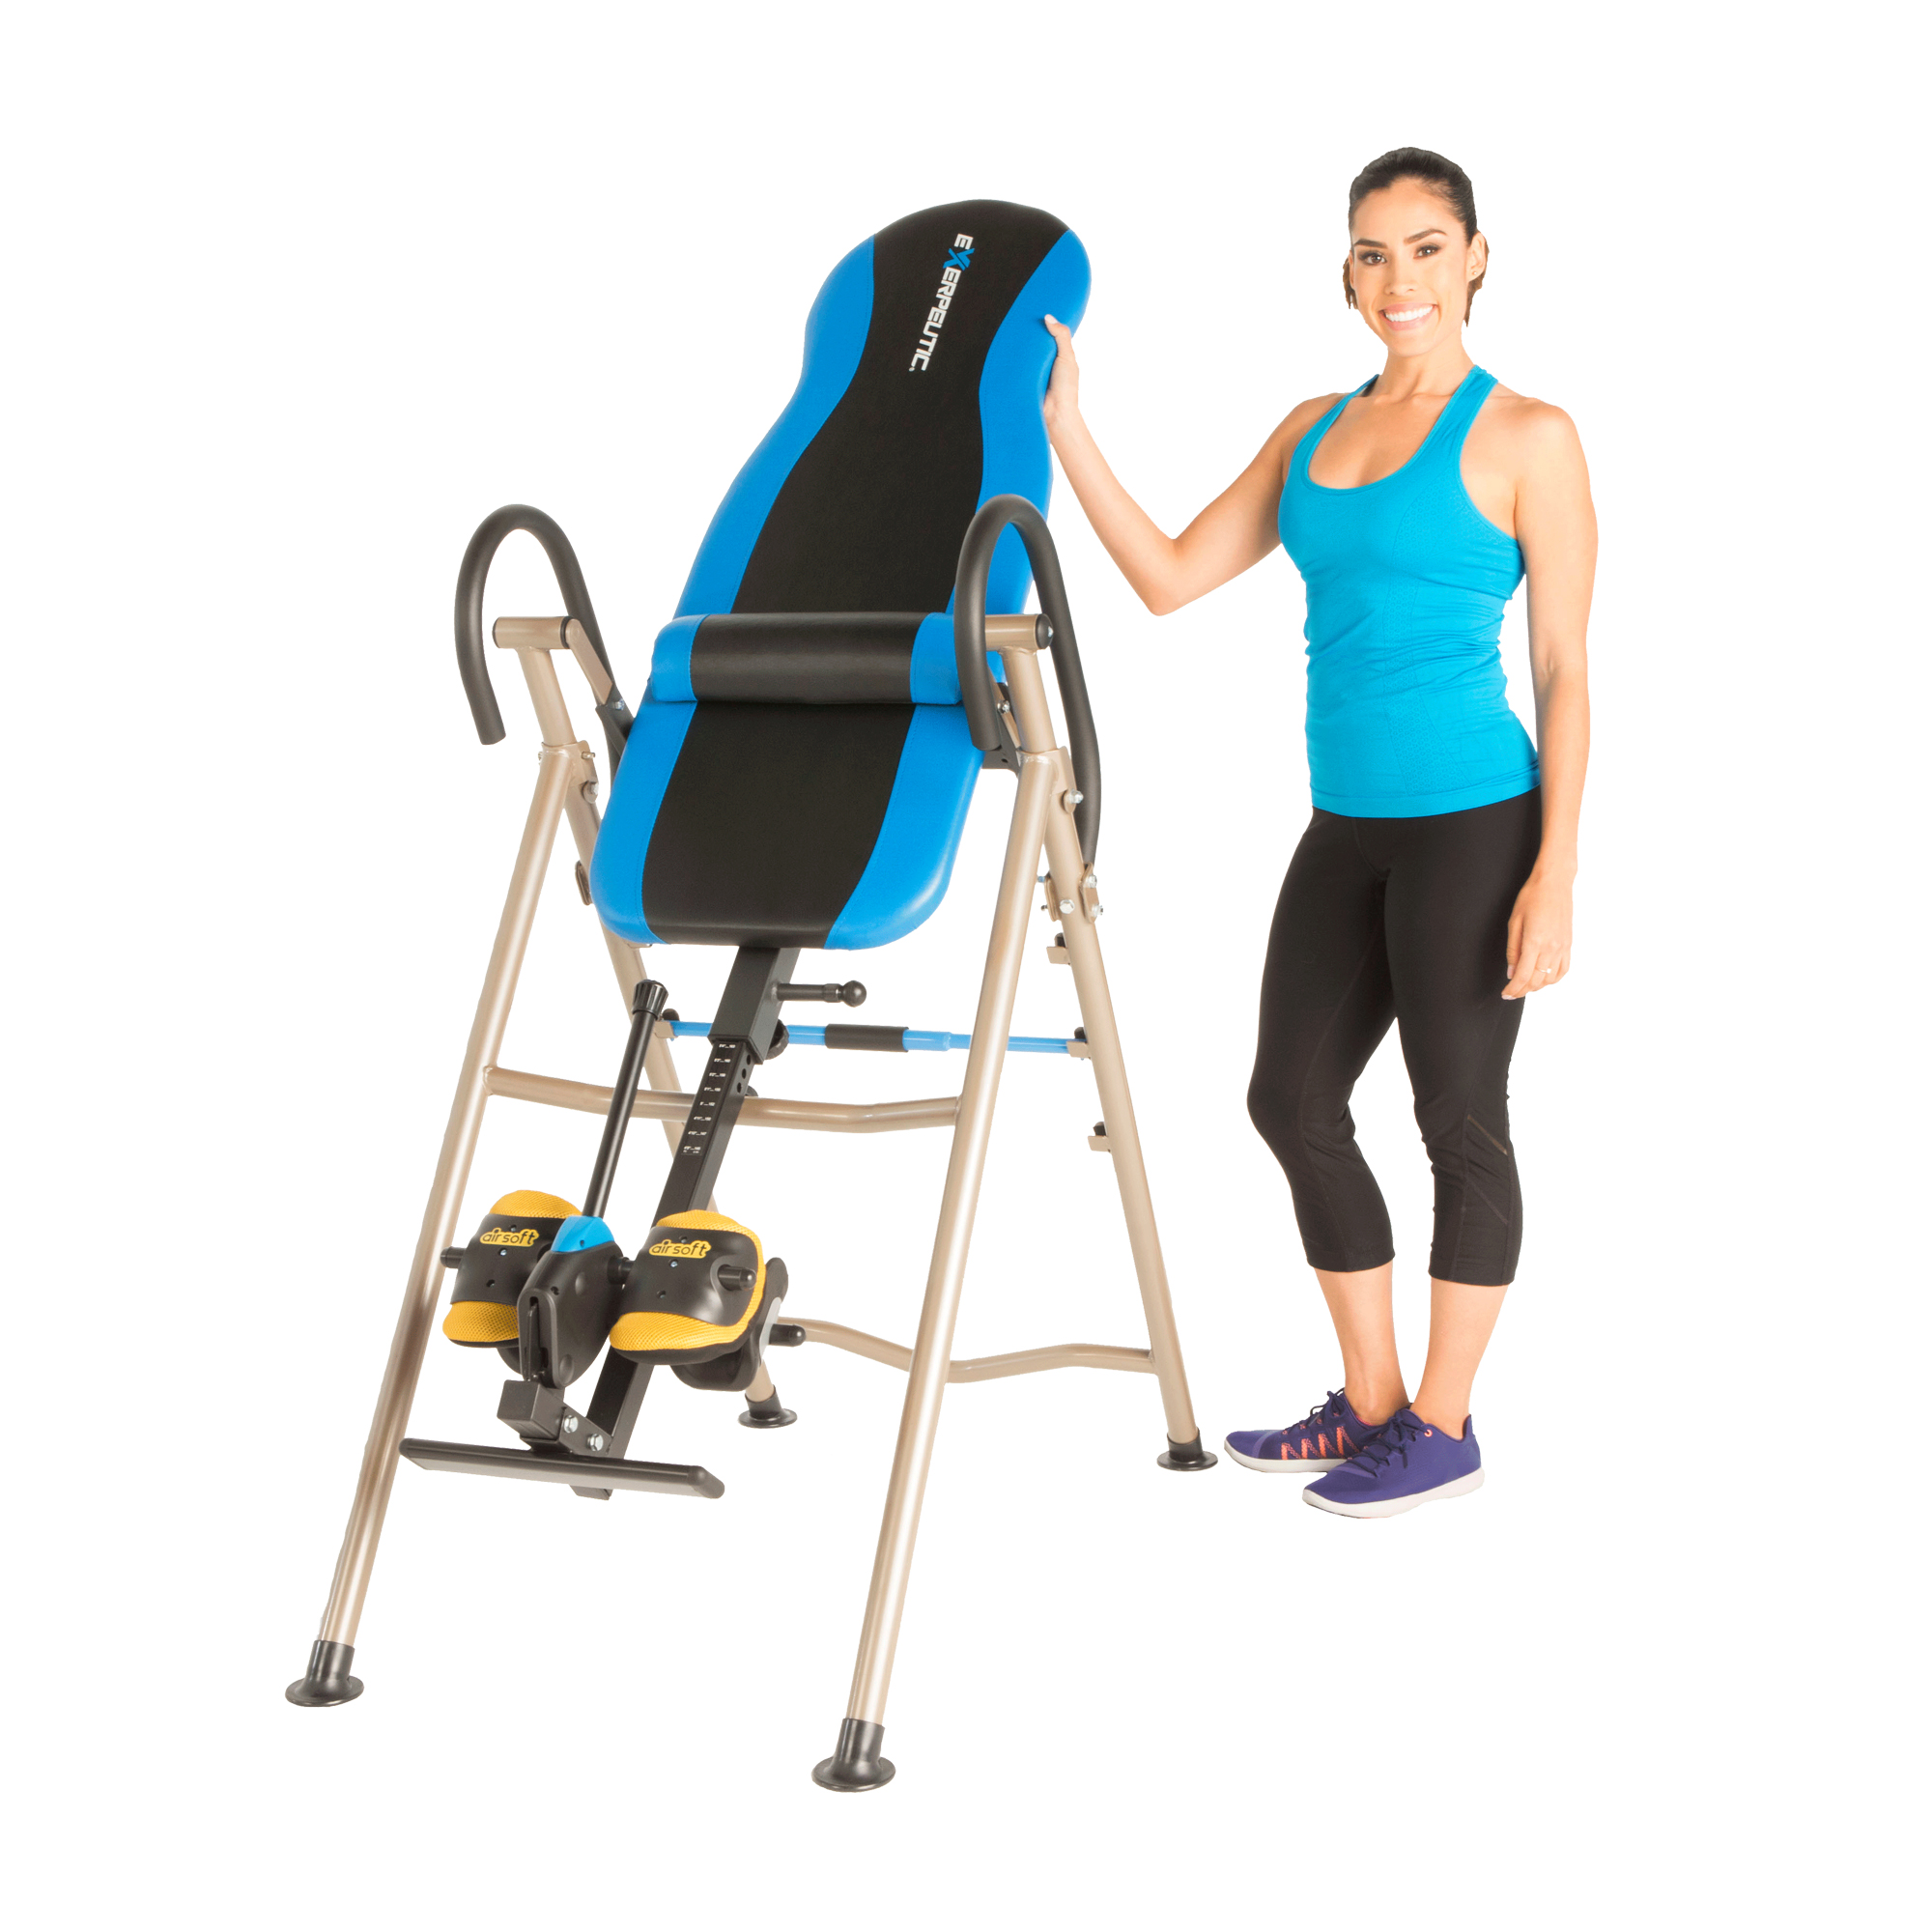 EXERPEUTIC 225SL Inversion Table with 'SURELOCK' Safety Ratchet System, Lumbar Spine Support and AIRSOFT No Pinch Ankle Holders